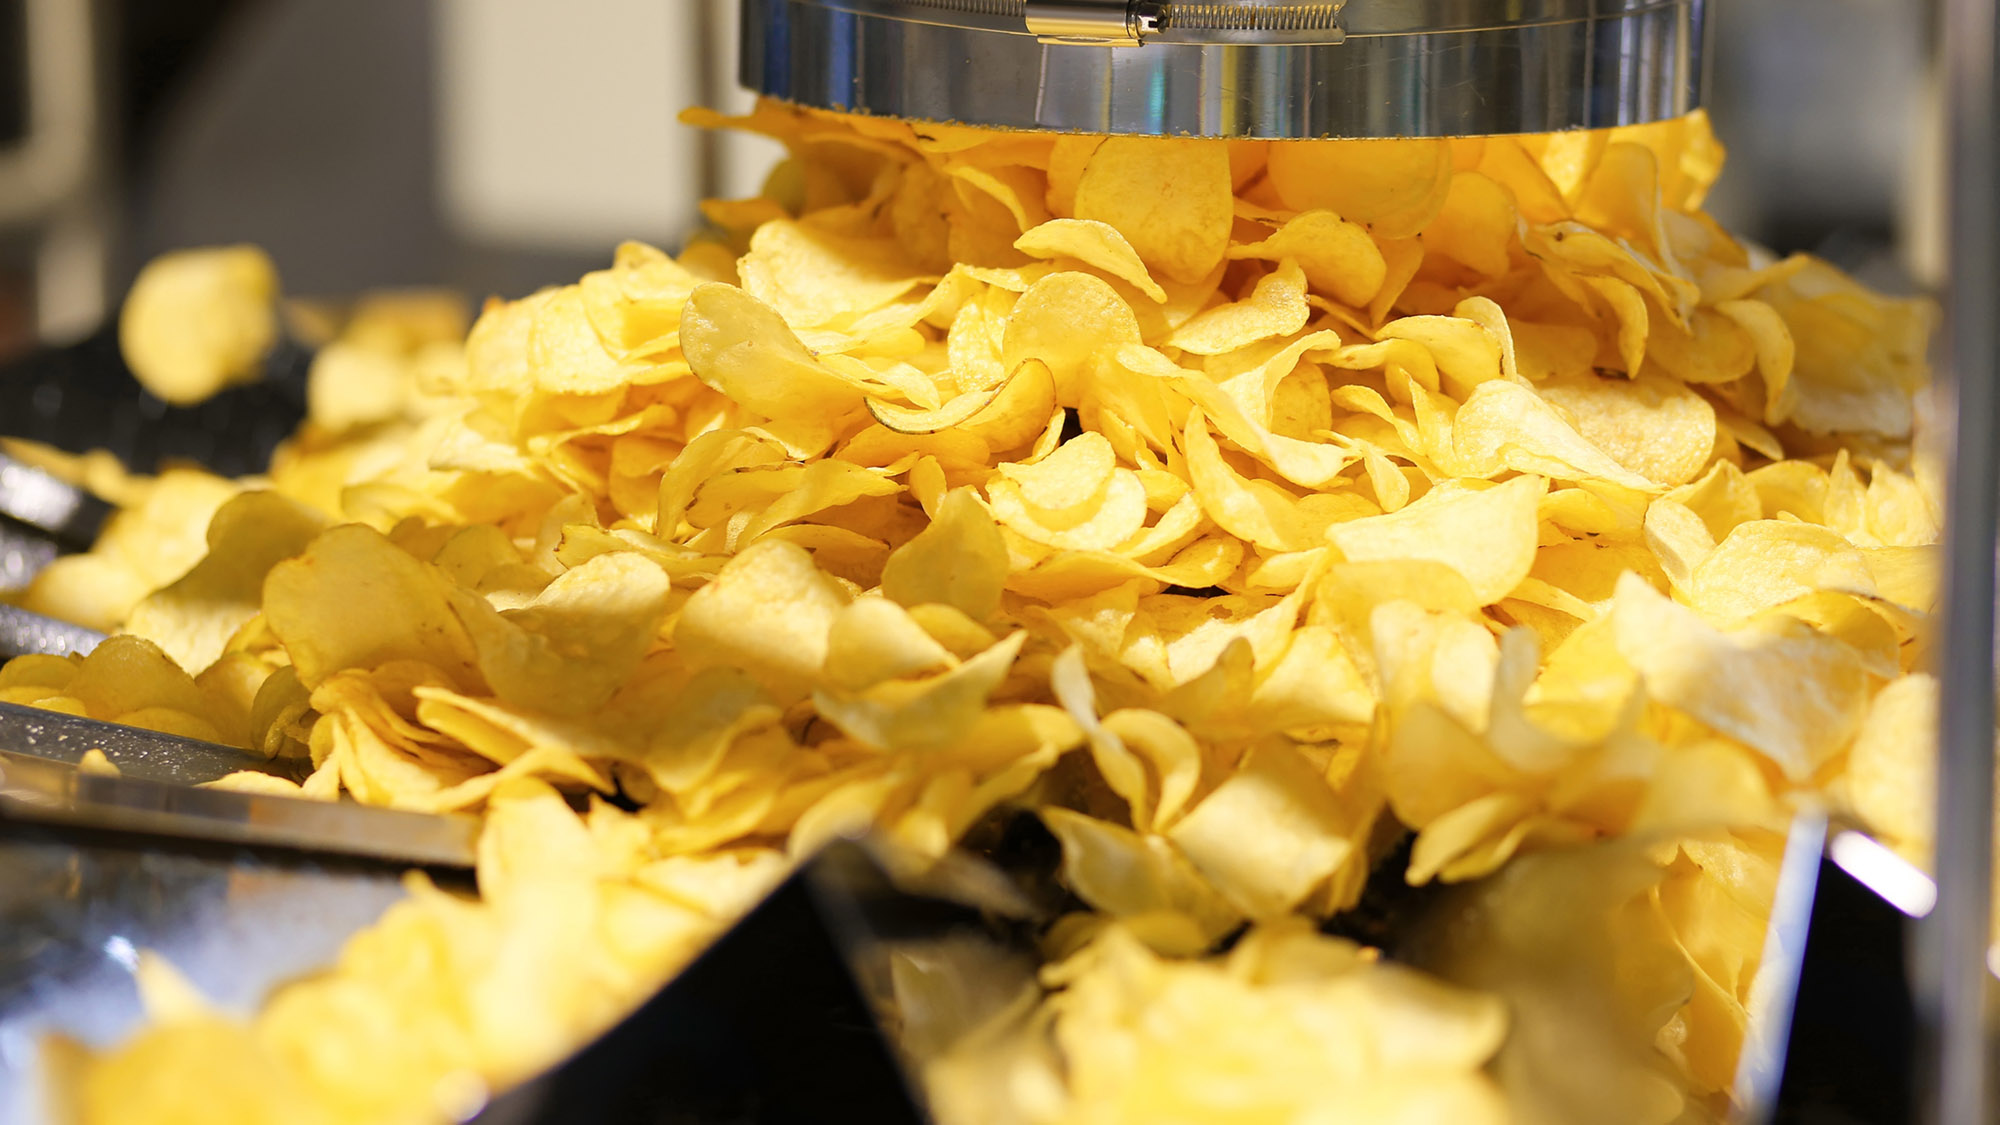 Line for the production and packaging of potato chips